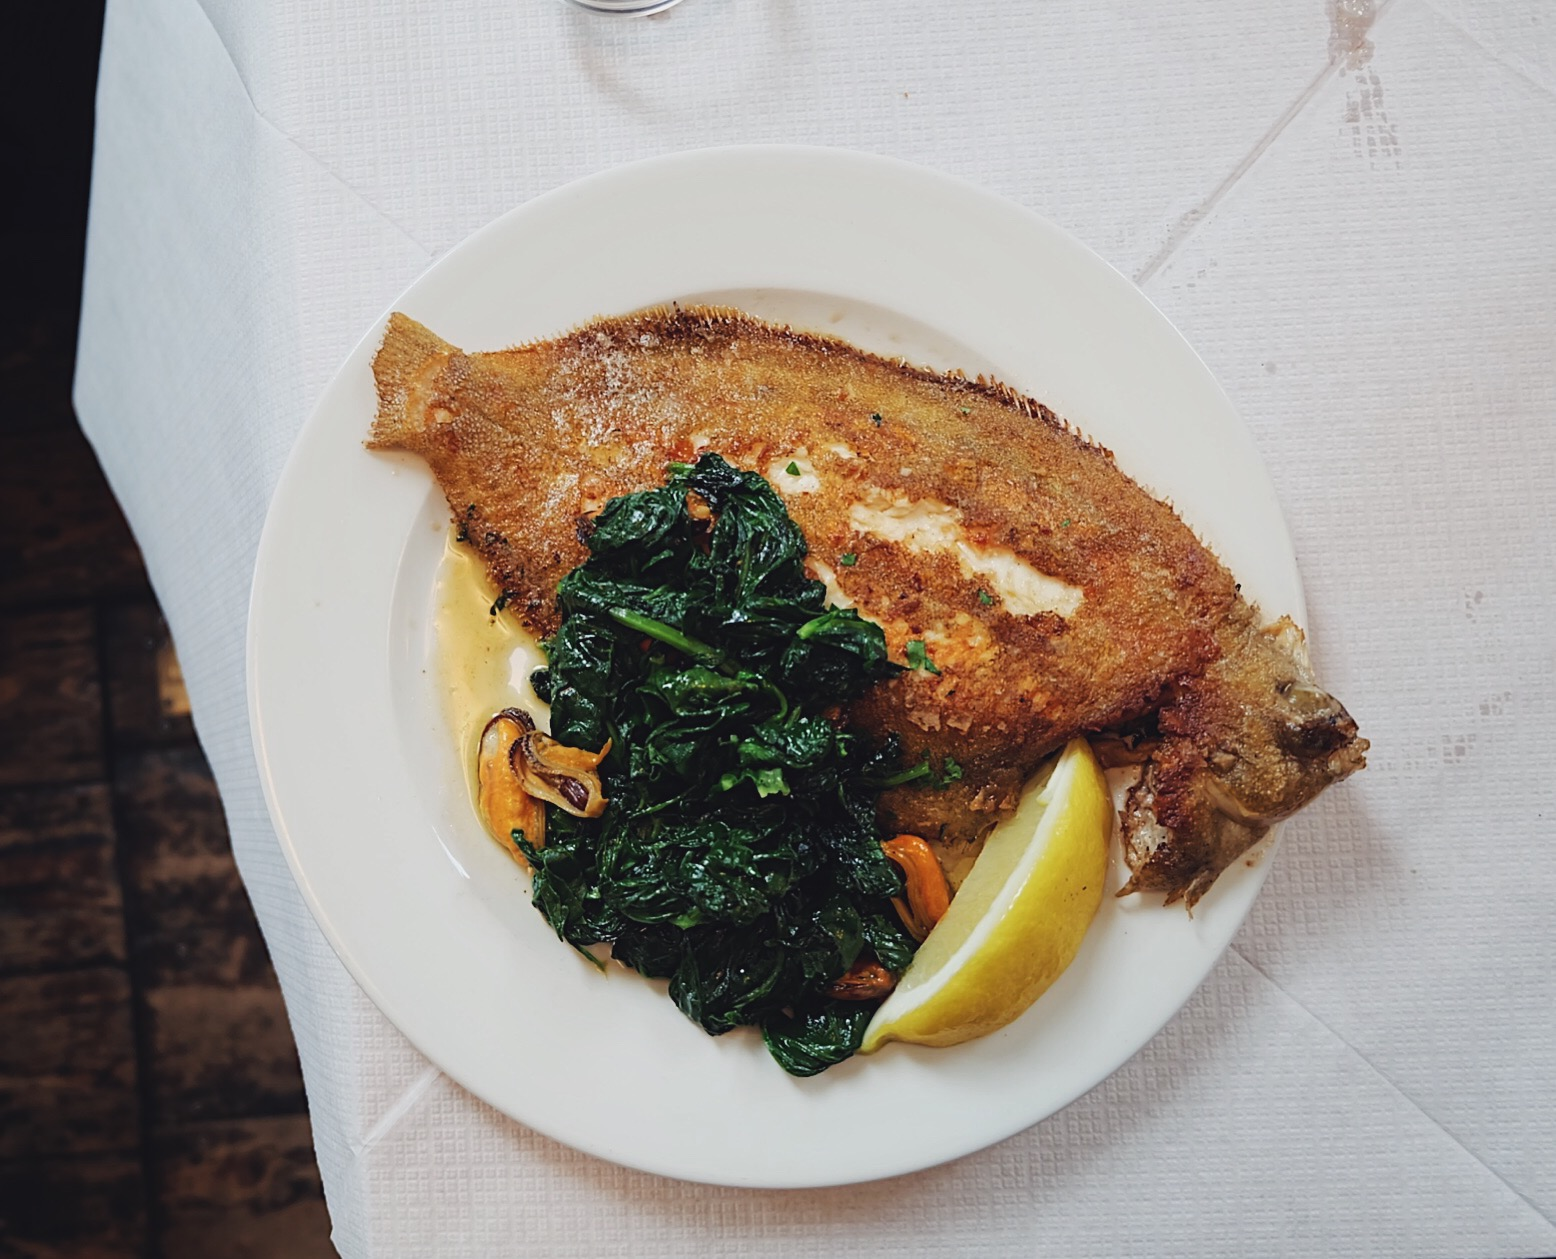 Lemon sole with wilted spinach and mussels (£22)